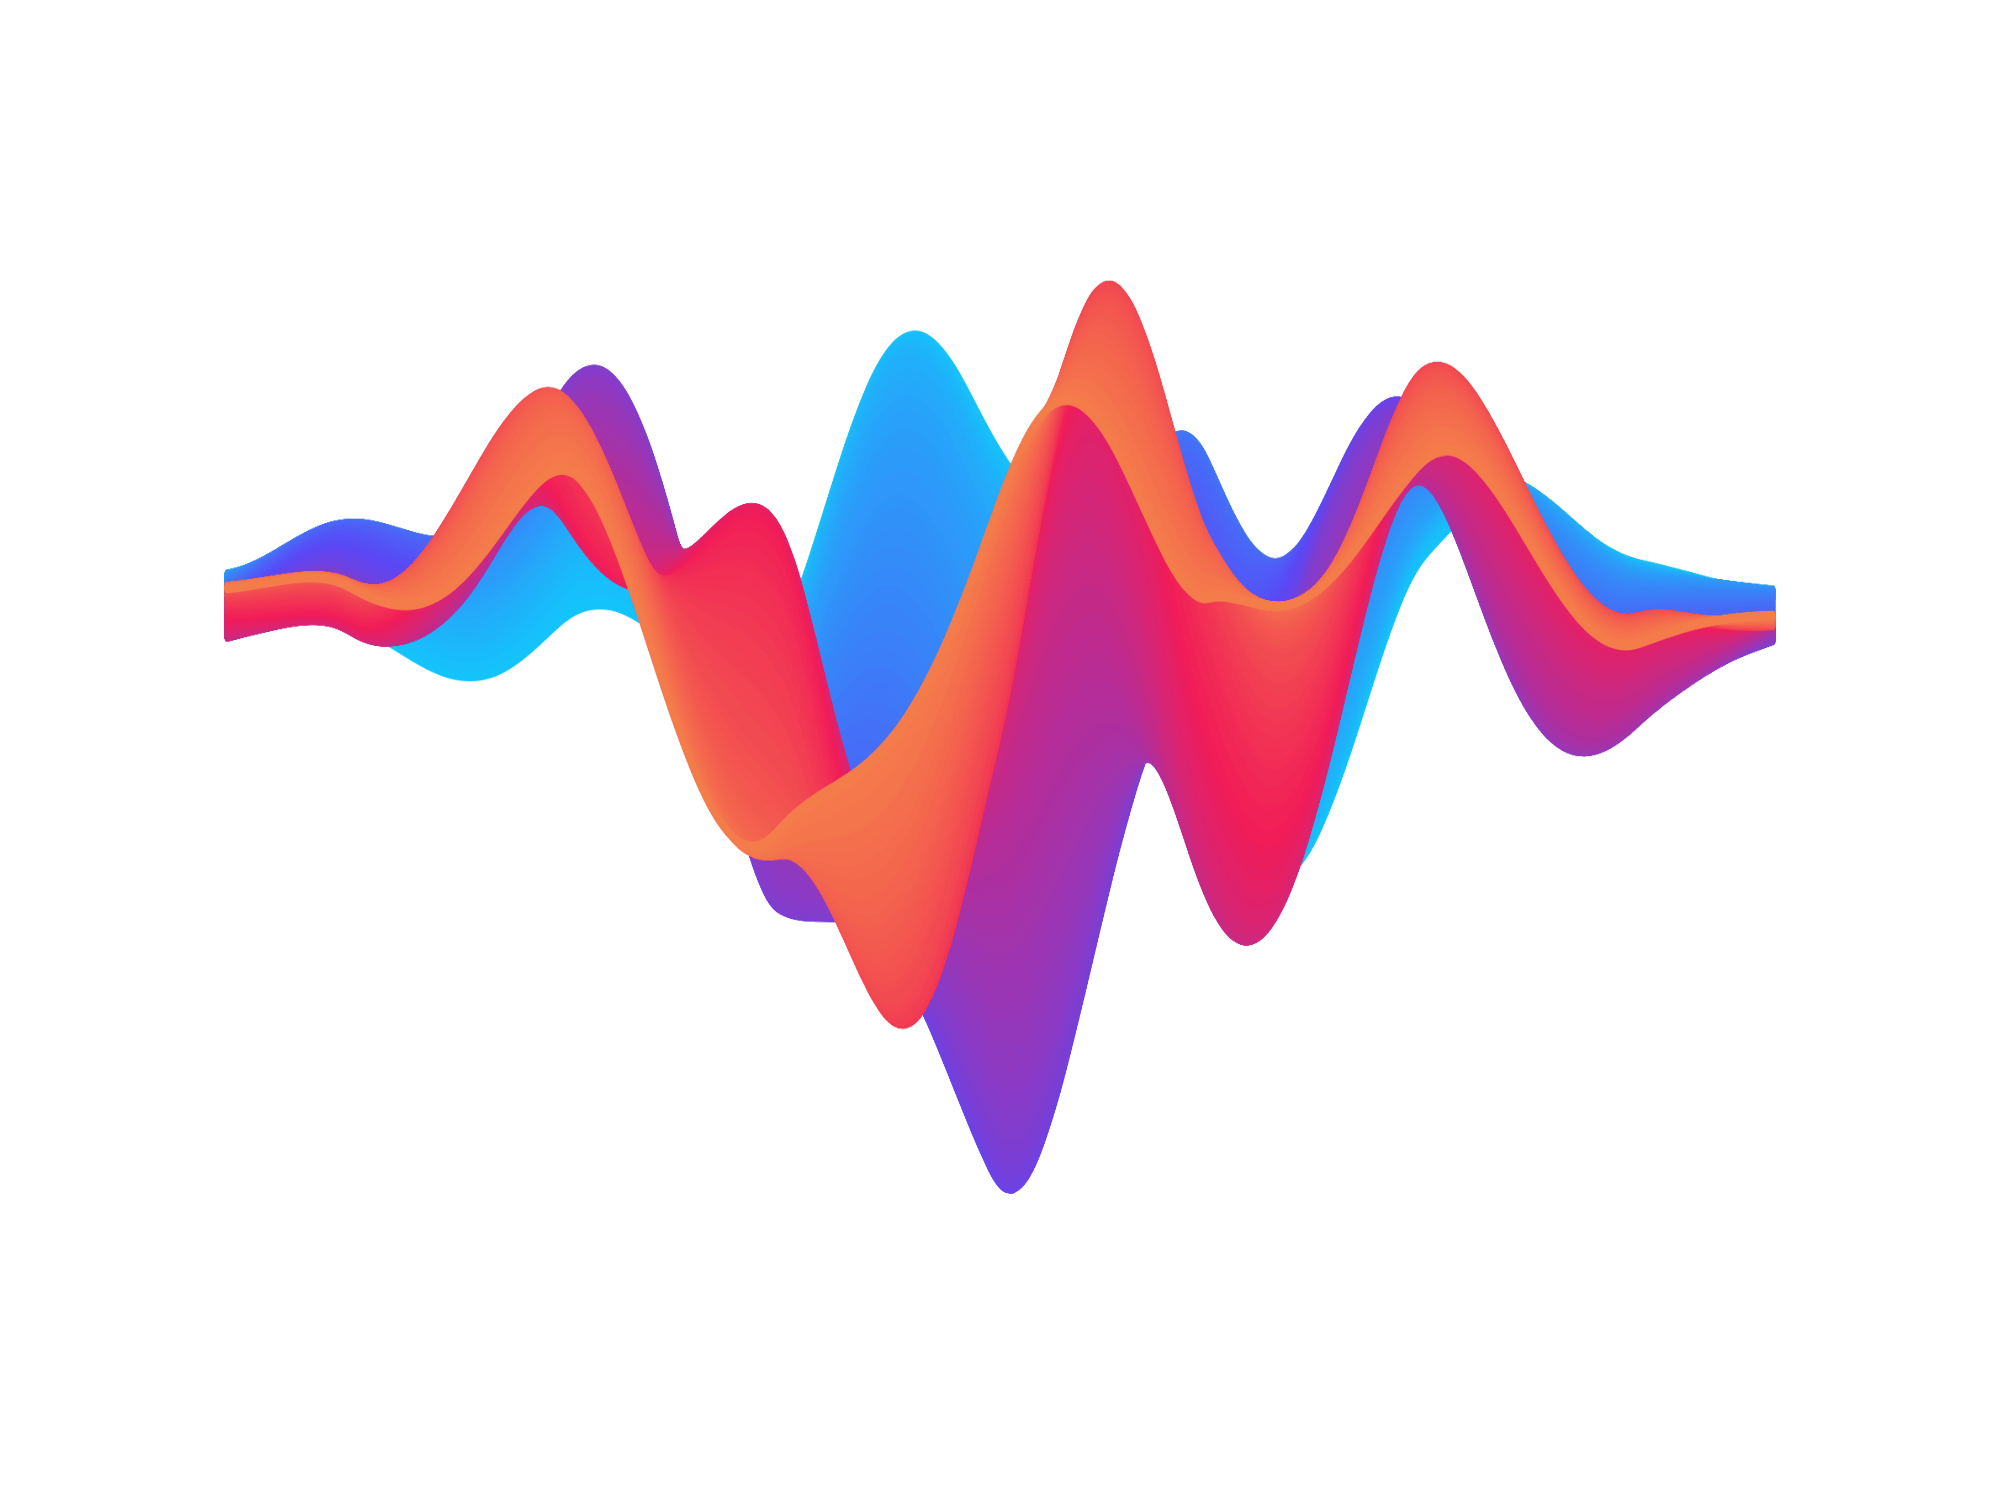 A visual sound graph